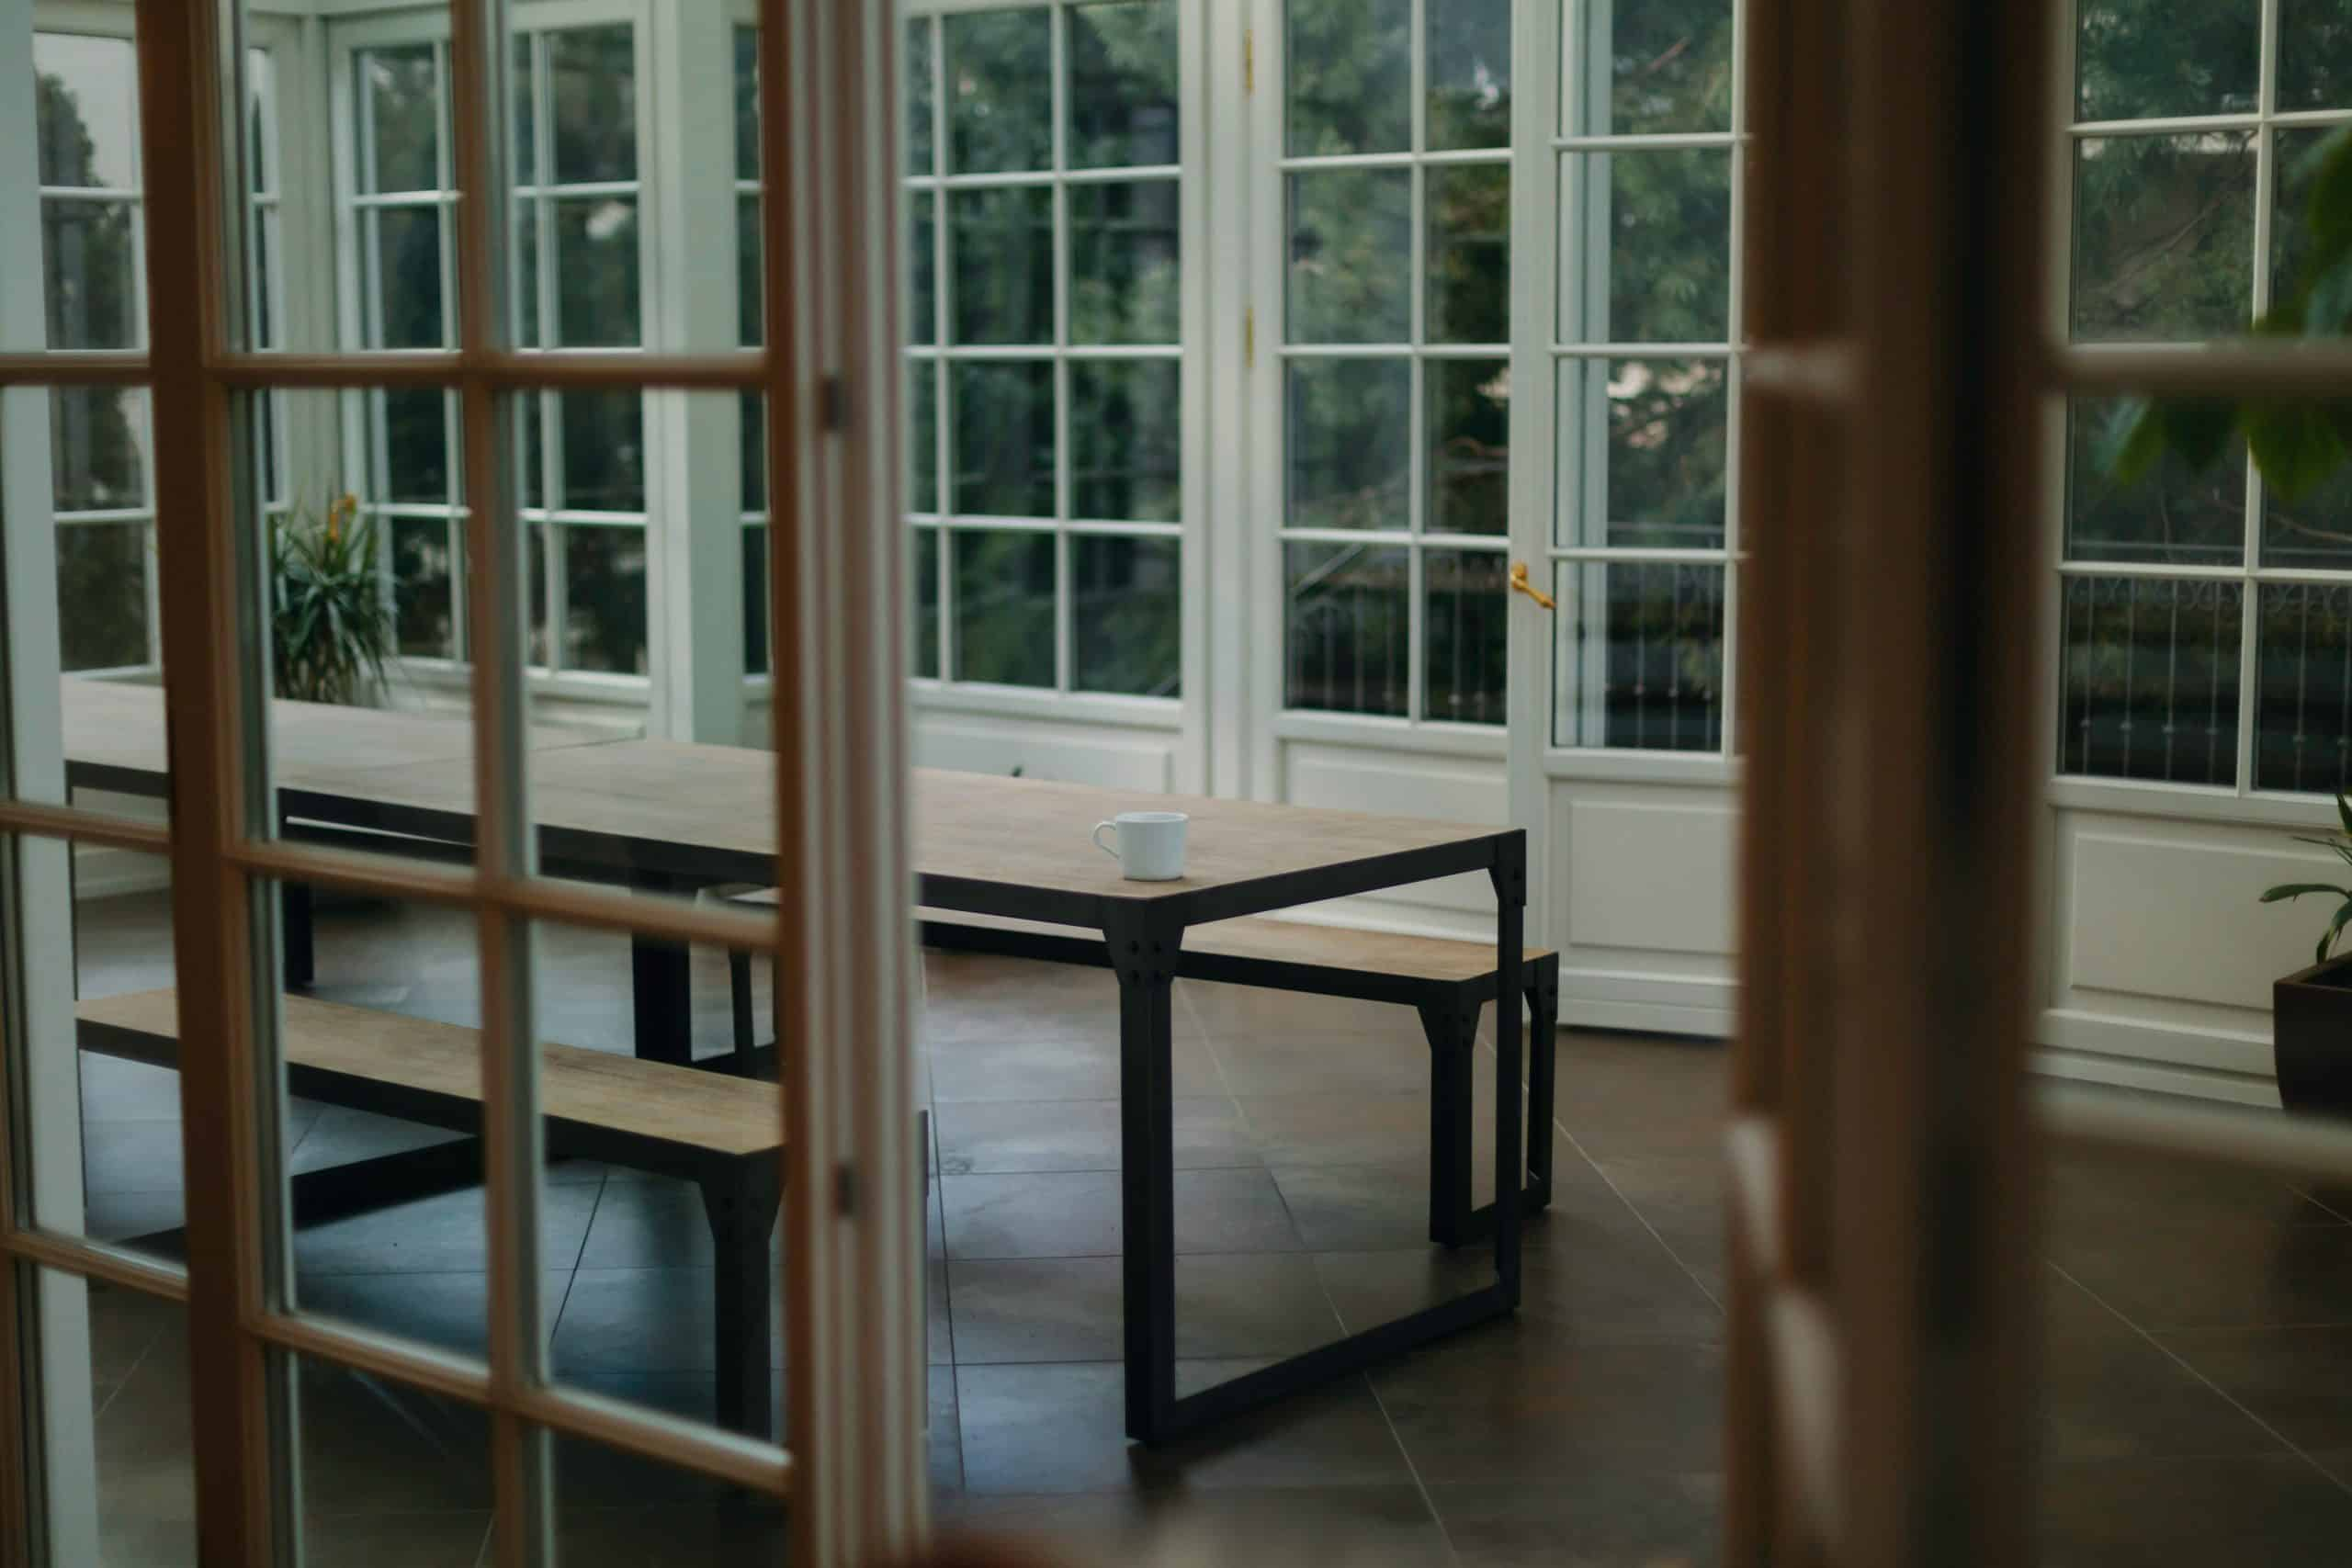 Does a conservatory add value to a house?